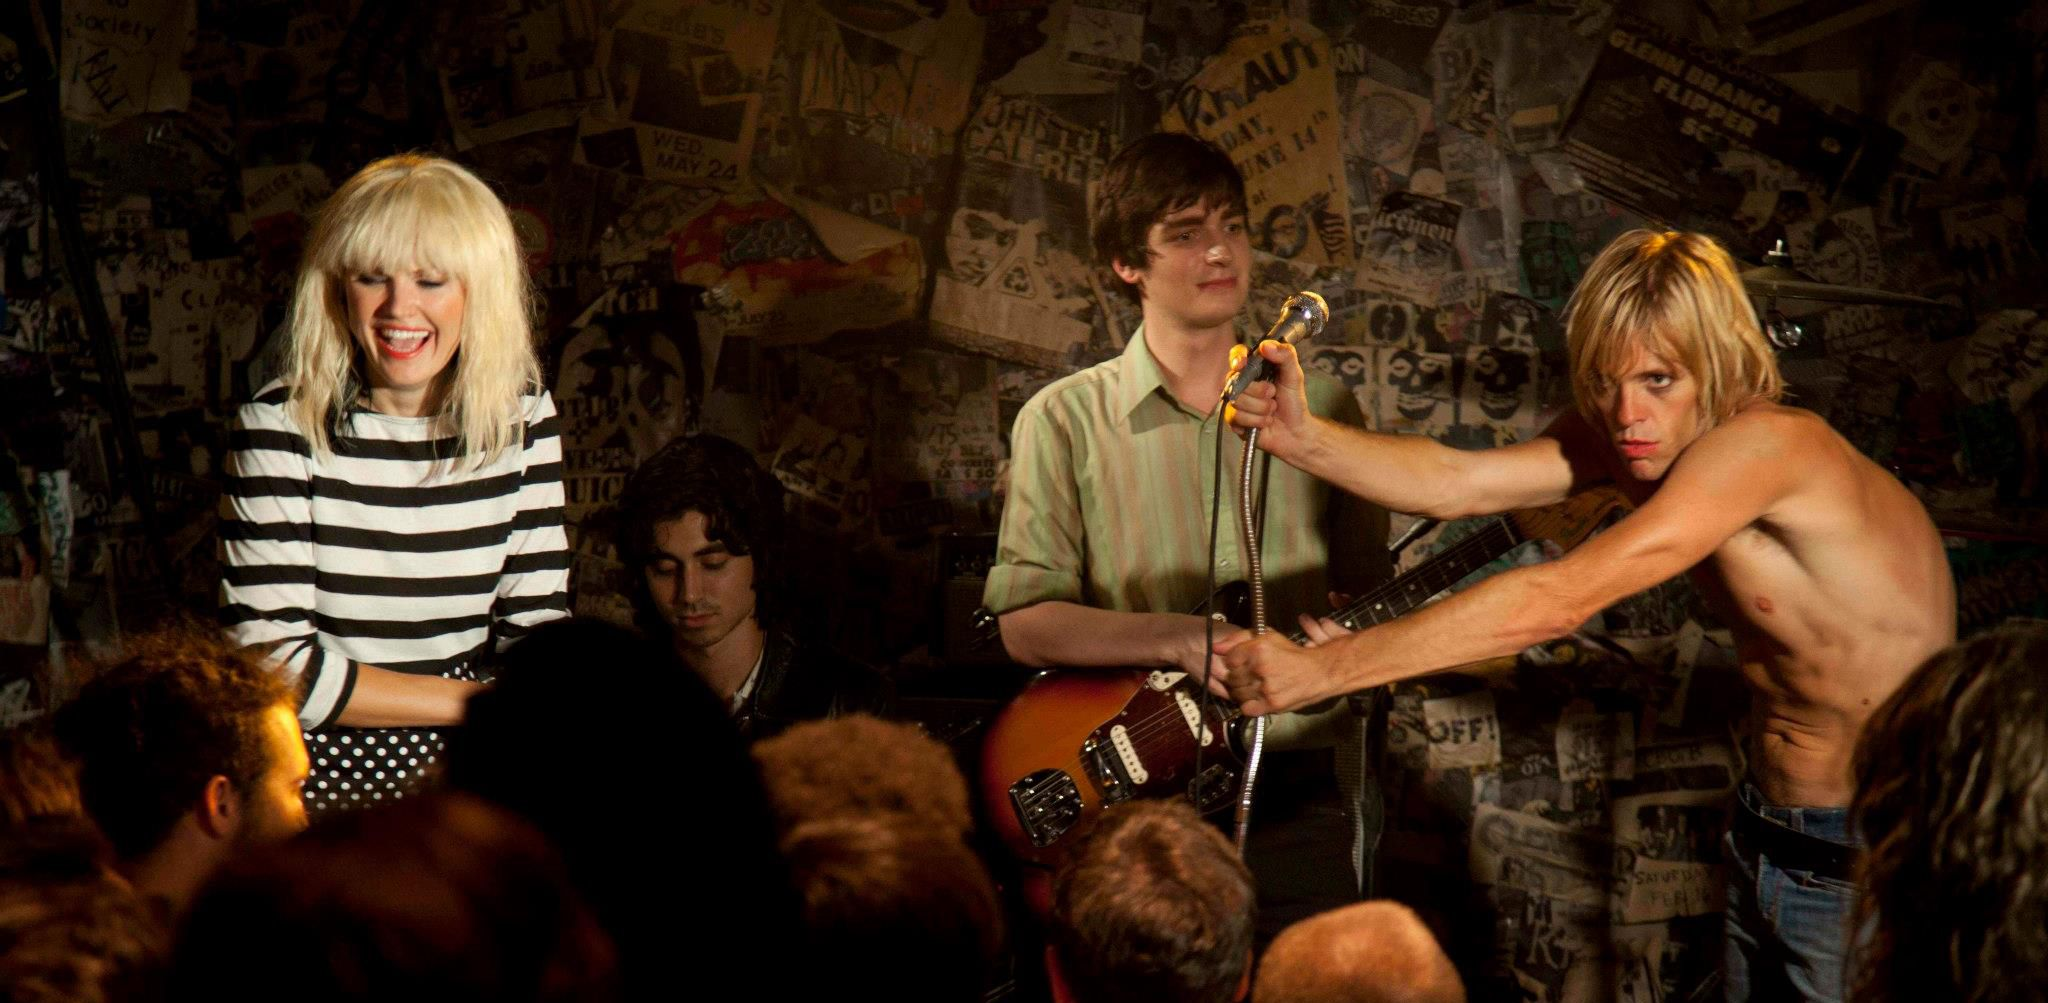 An image from CBGB